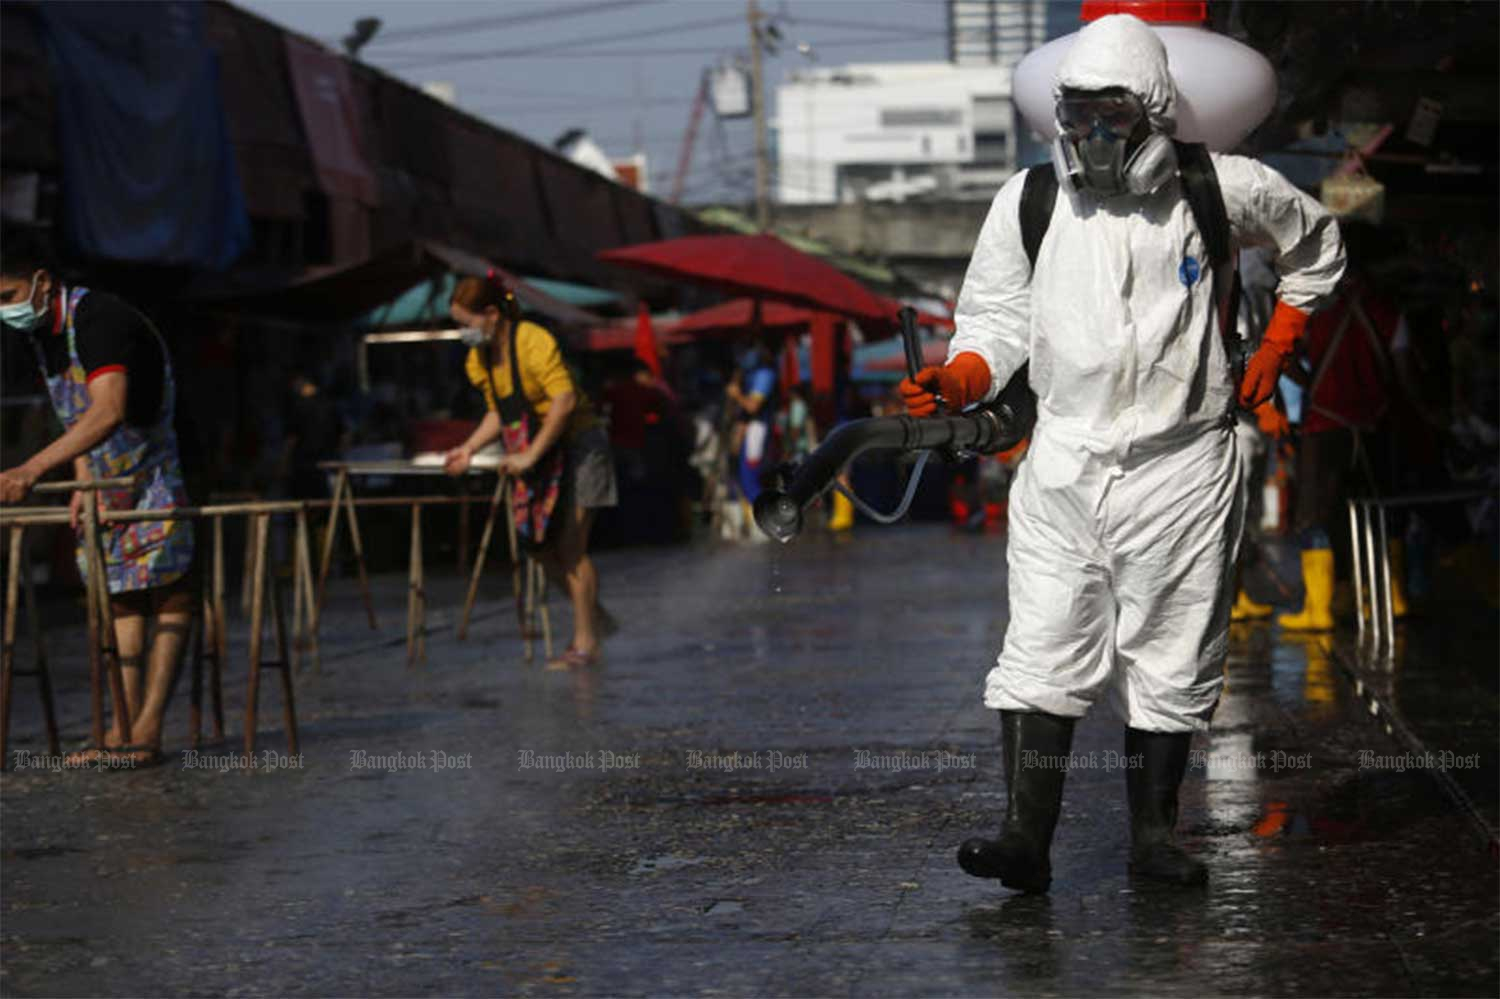 A health official sprays disinfectant at Klong Toey market in Bangkok on Tuesday.(Photo by Wichan Charoenkiatpakul)